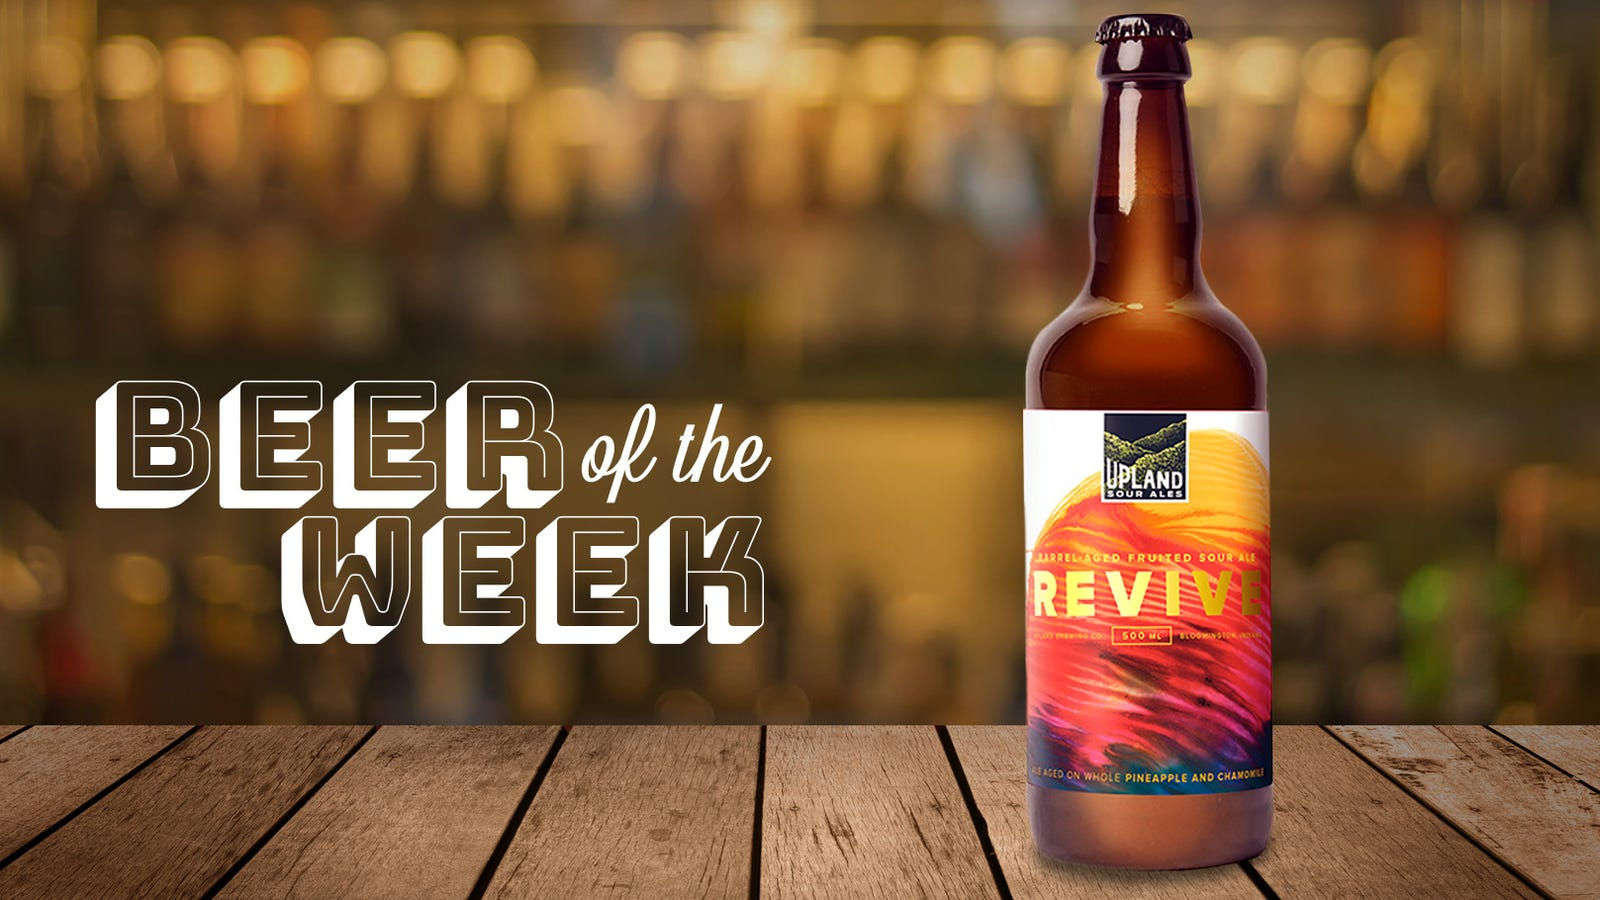 Beer of the Week: Upland Brewing Revive